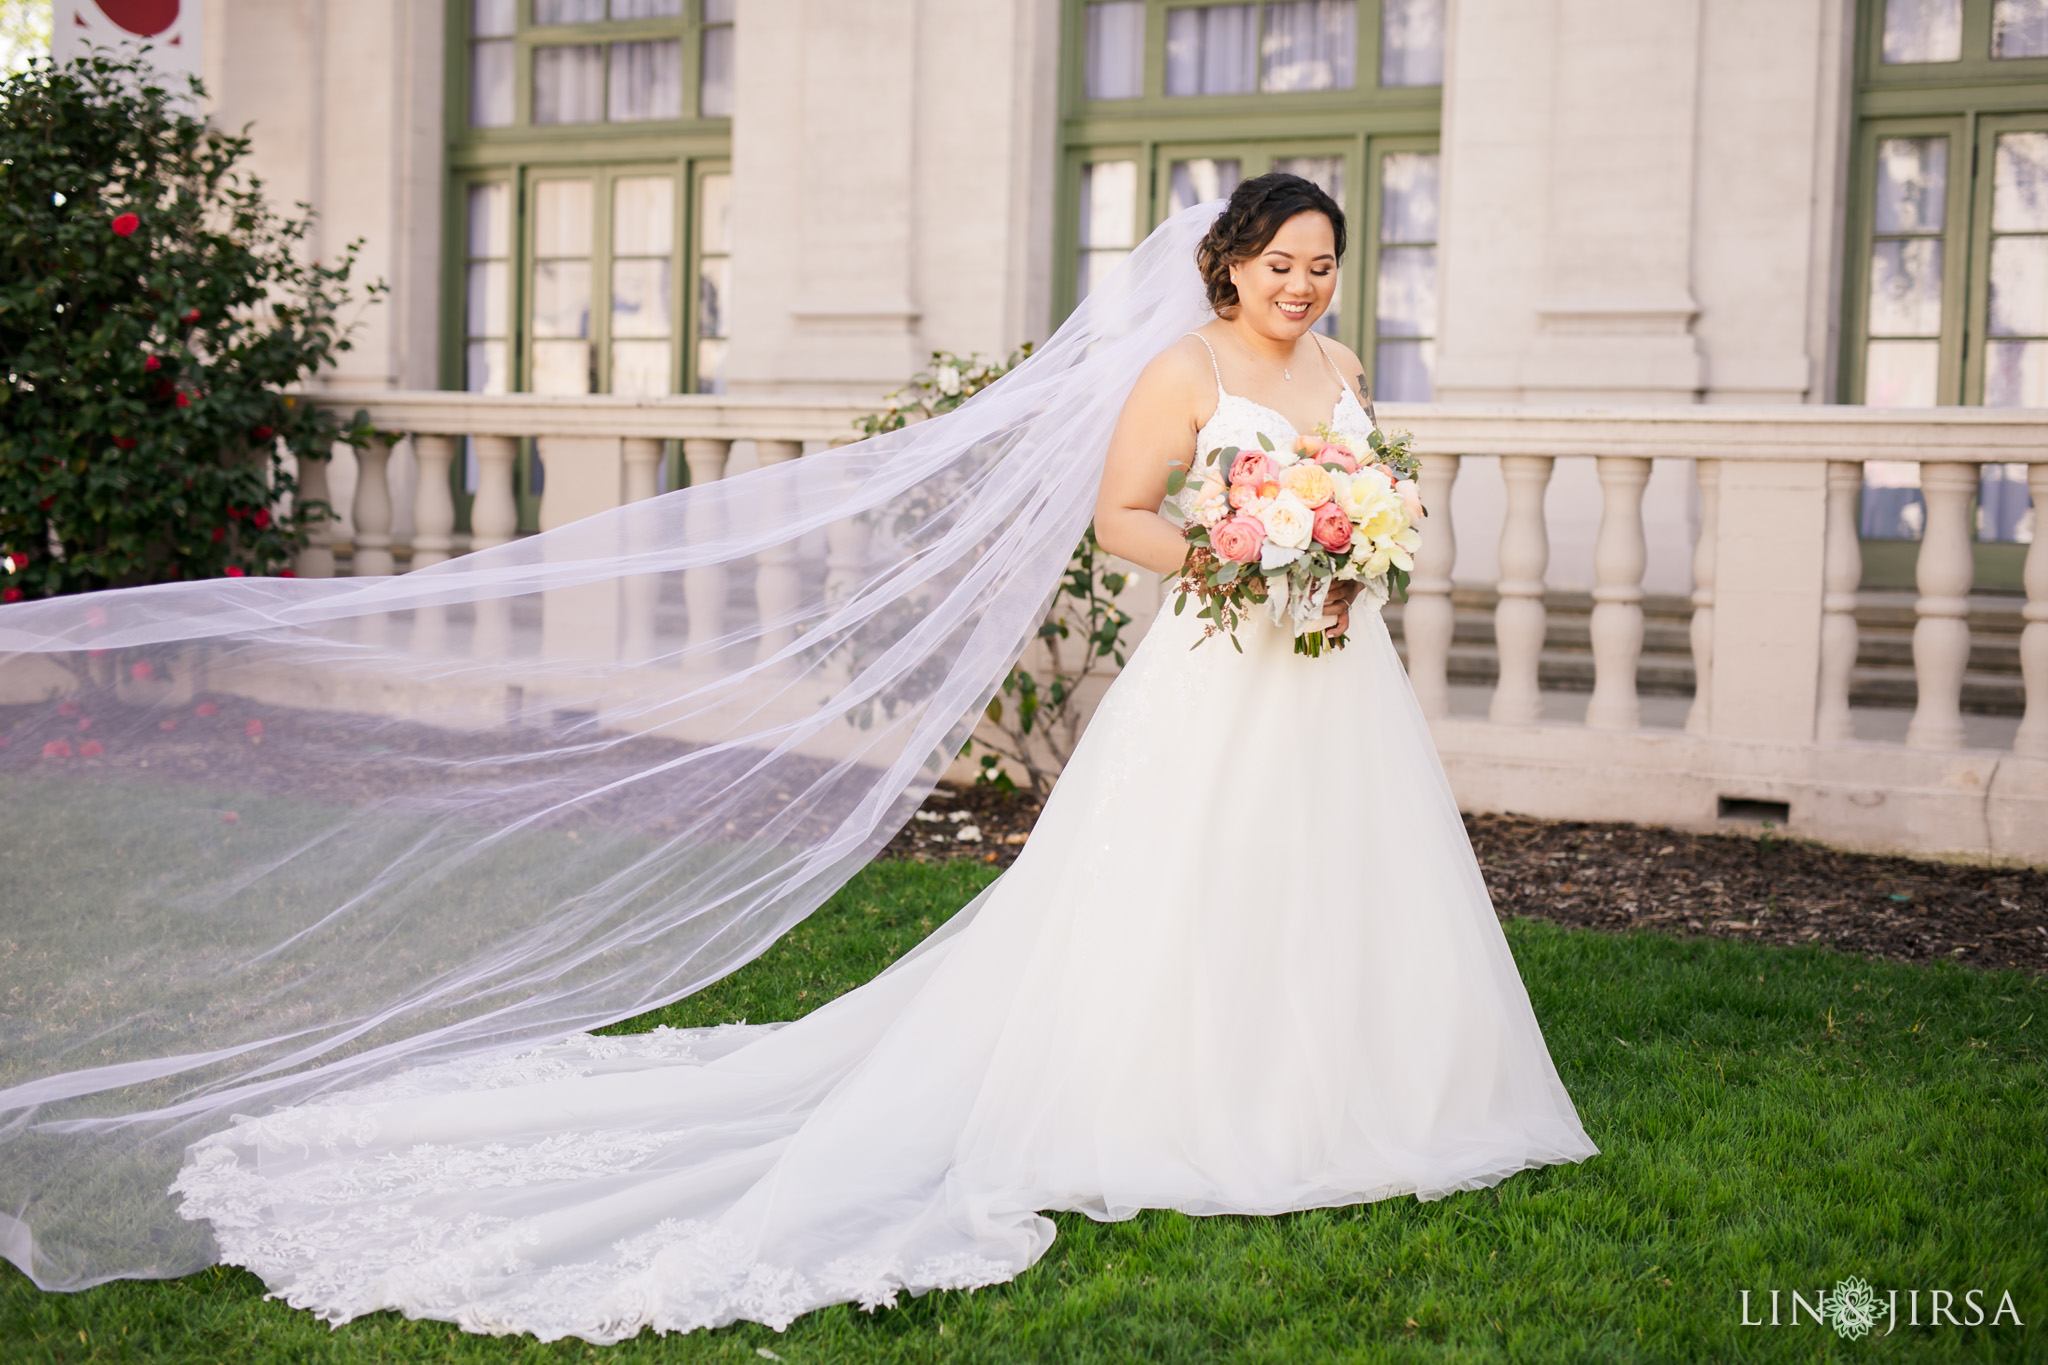 62 The Ebell Los Angeles Wedding Photography